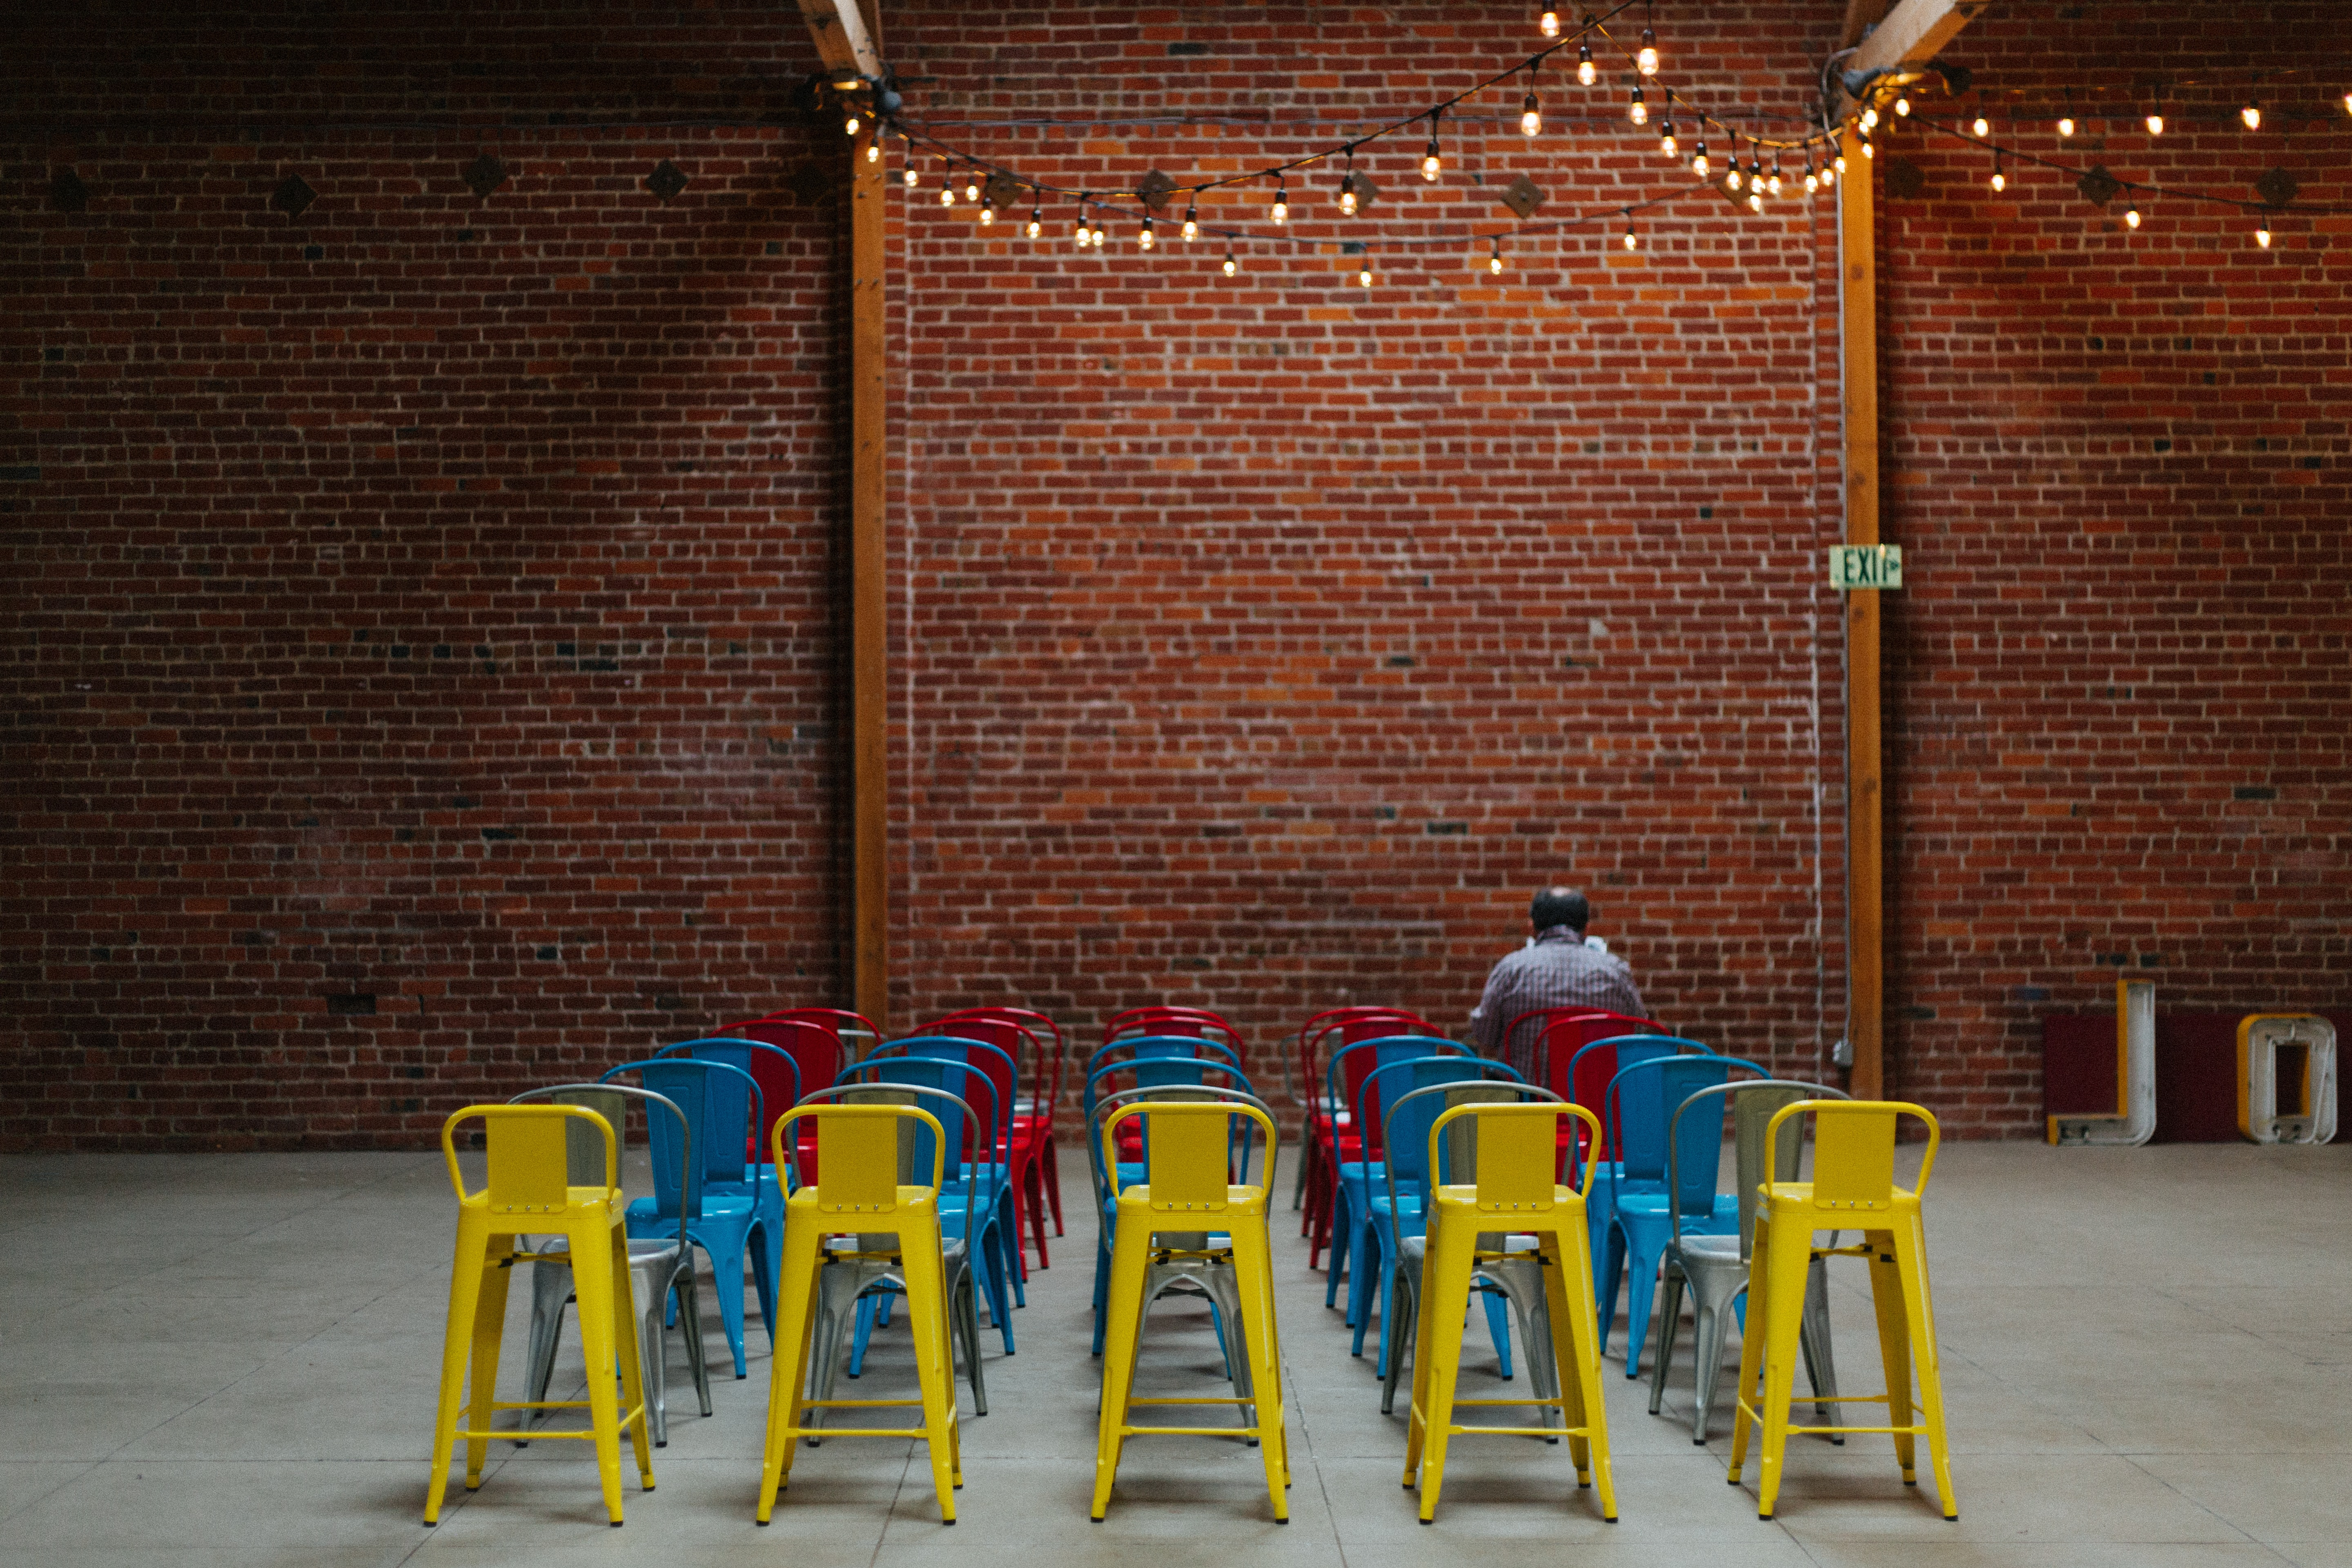 Person sits alone in rows of colorful chairs inside a decorated event space